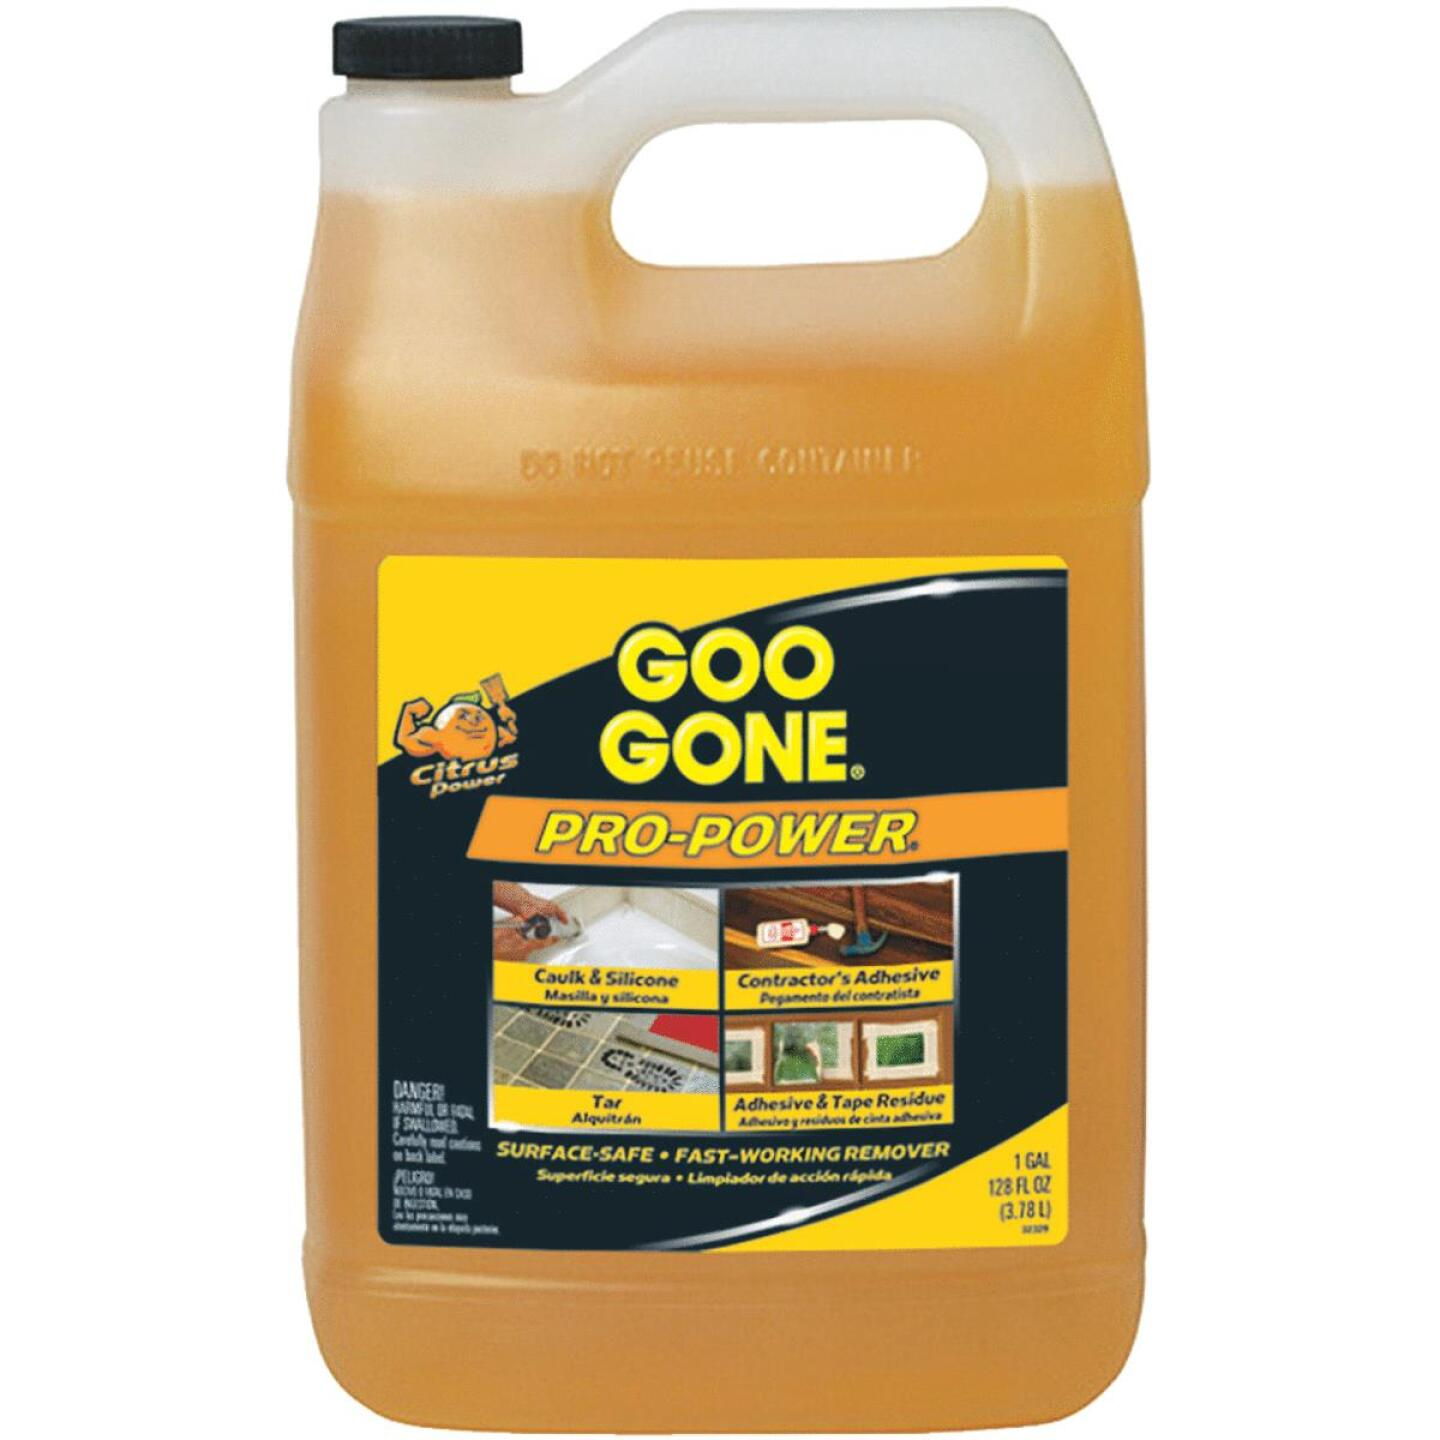 Goo Gone 1 Gal. Pro-Power Adhesive Remover Image 211